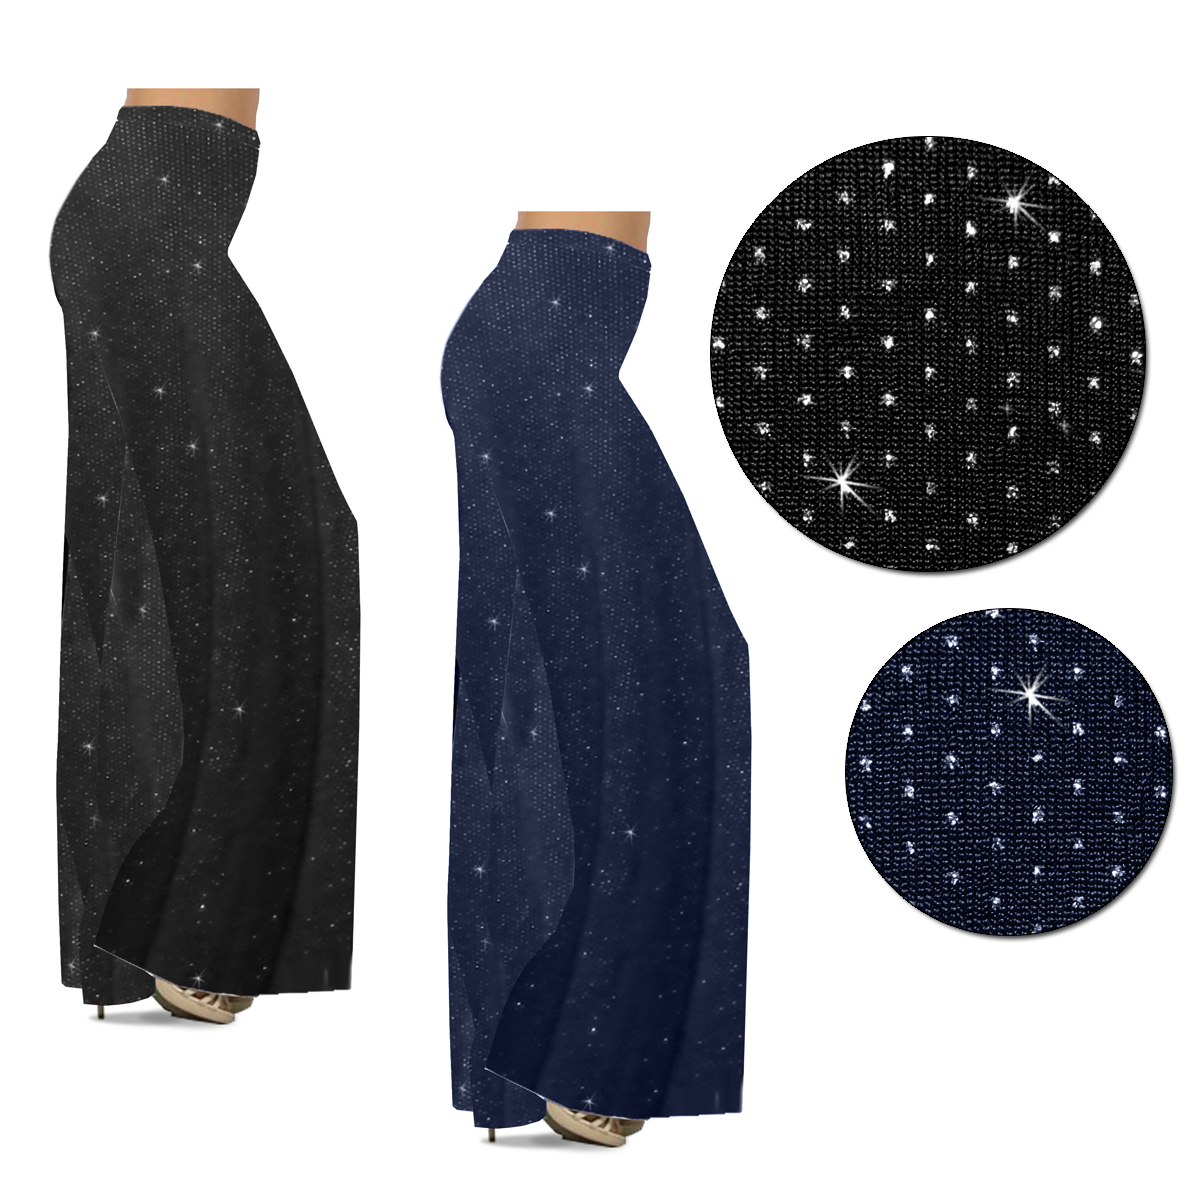 23b280b868e Customizable Plus Size Black or Navy With Glittery Silver Dots Slinky Print  Palazzo Pants - Leggings - Capri s - Sizes Lg XL 1x 2x 3x 4x 5x 6x 7x 8x 9x